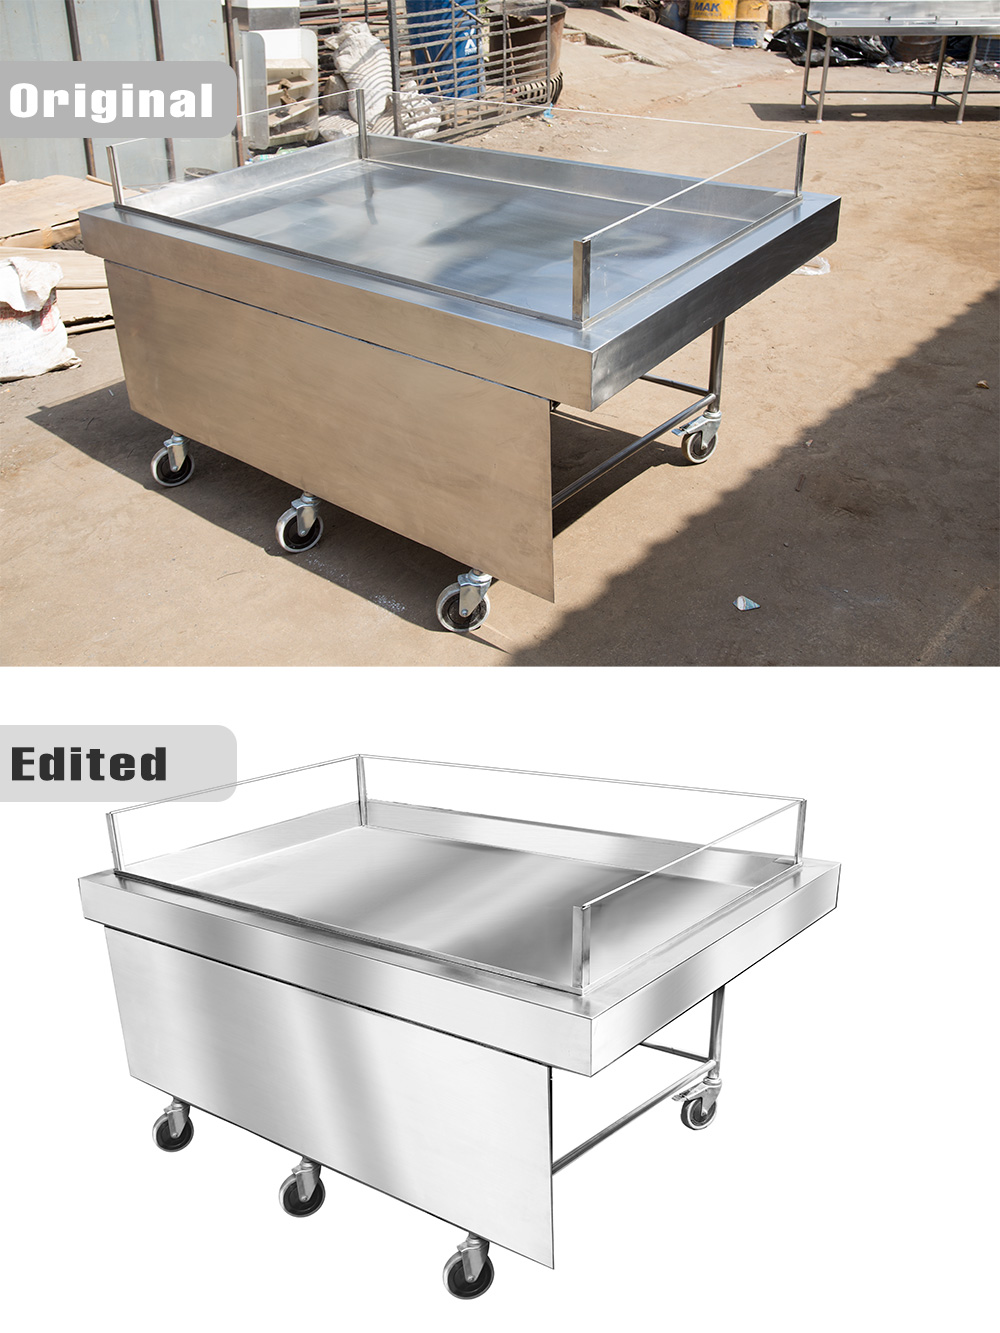 Digital high level editing of stainless steel counter